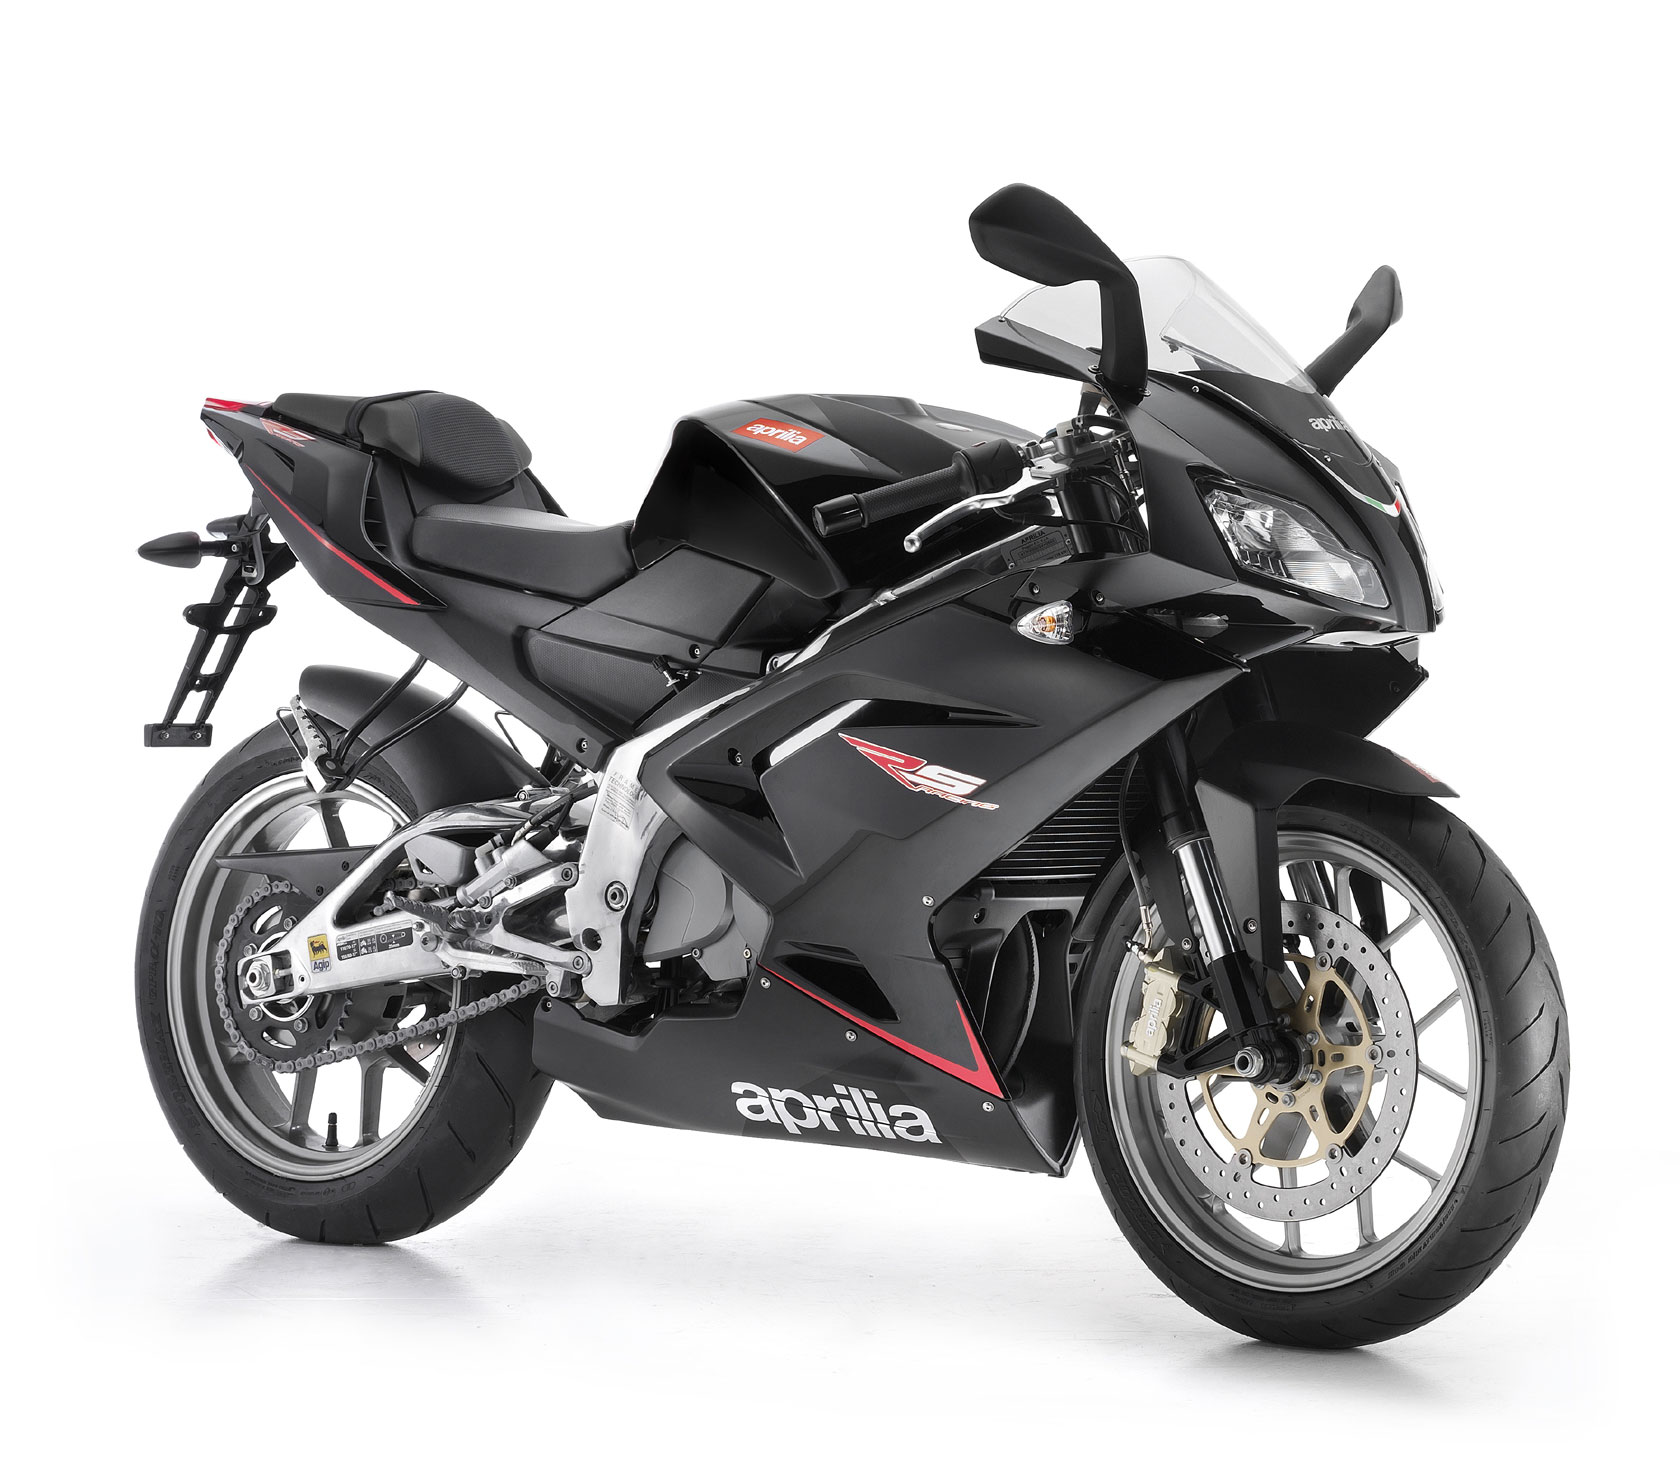 aprilia rs 125 specs 2009 2010 autoevolution. Black Bedroom Furniture Sets. Home Design Ideas